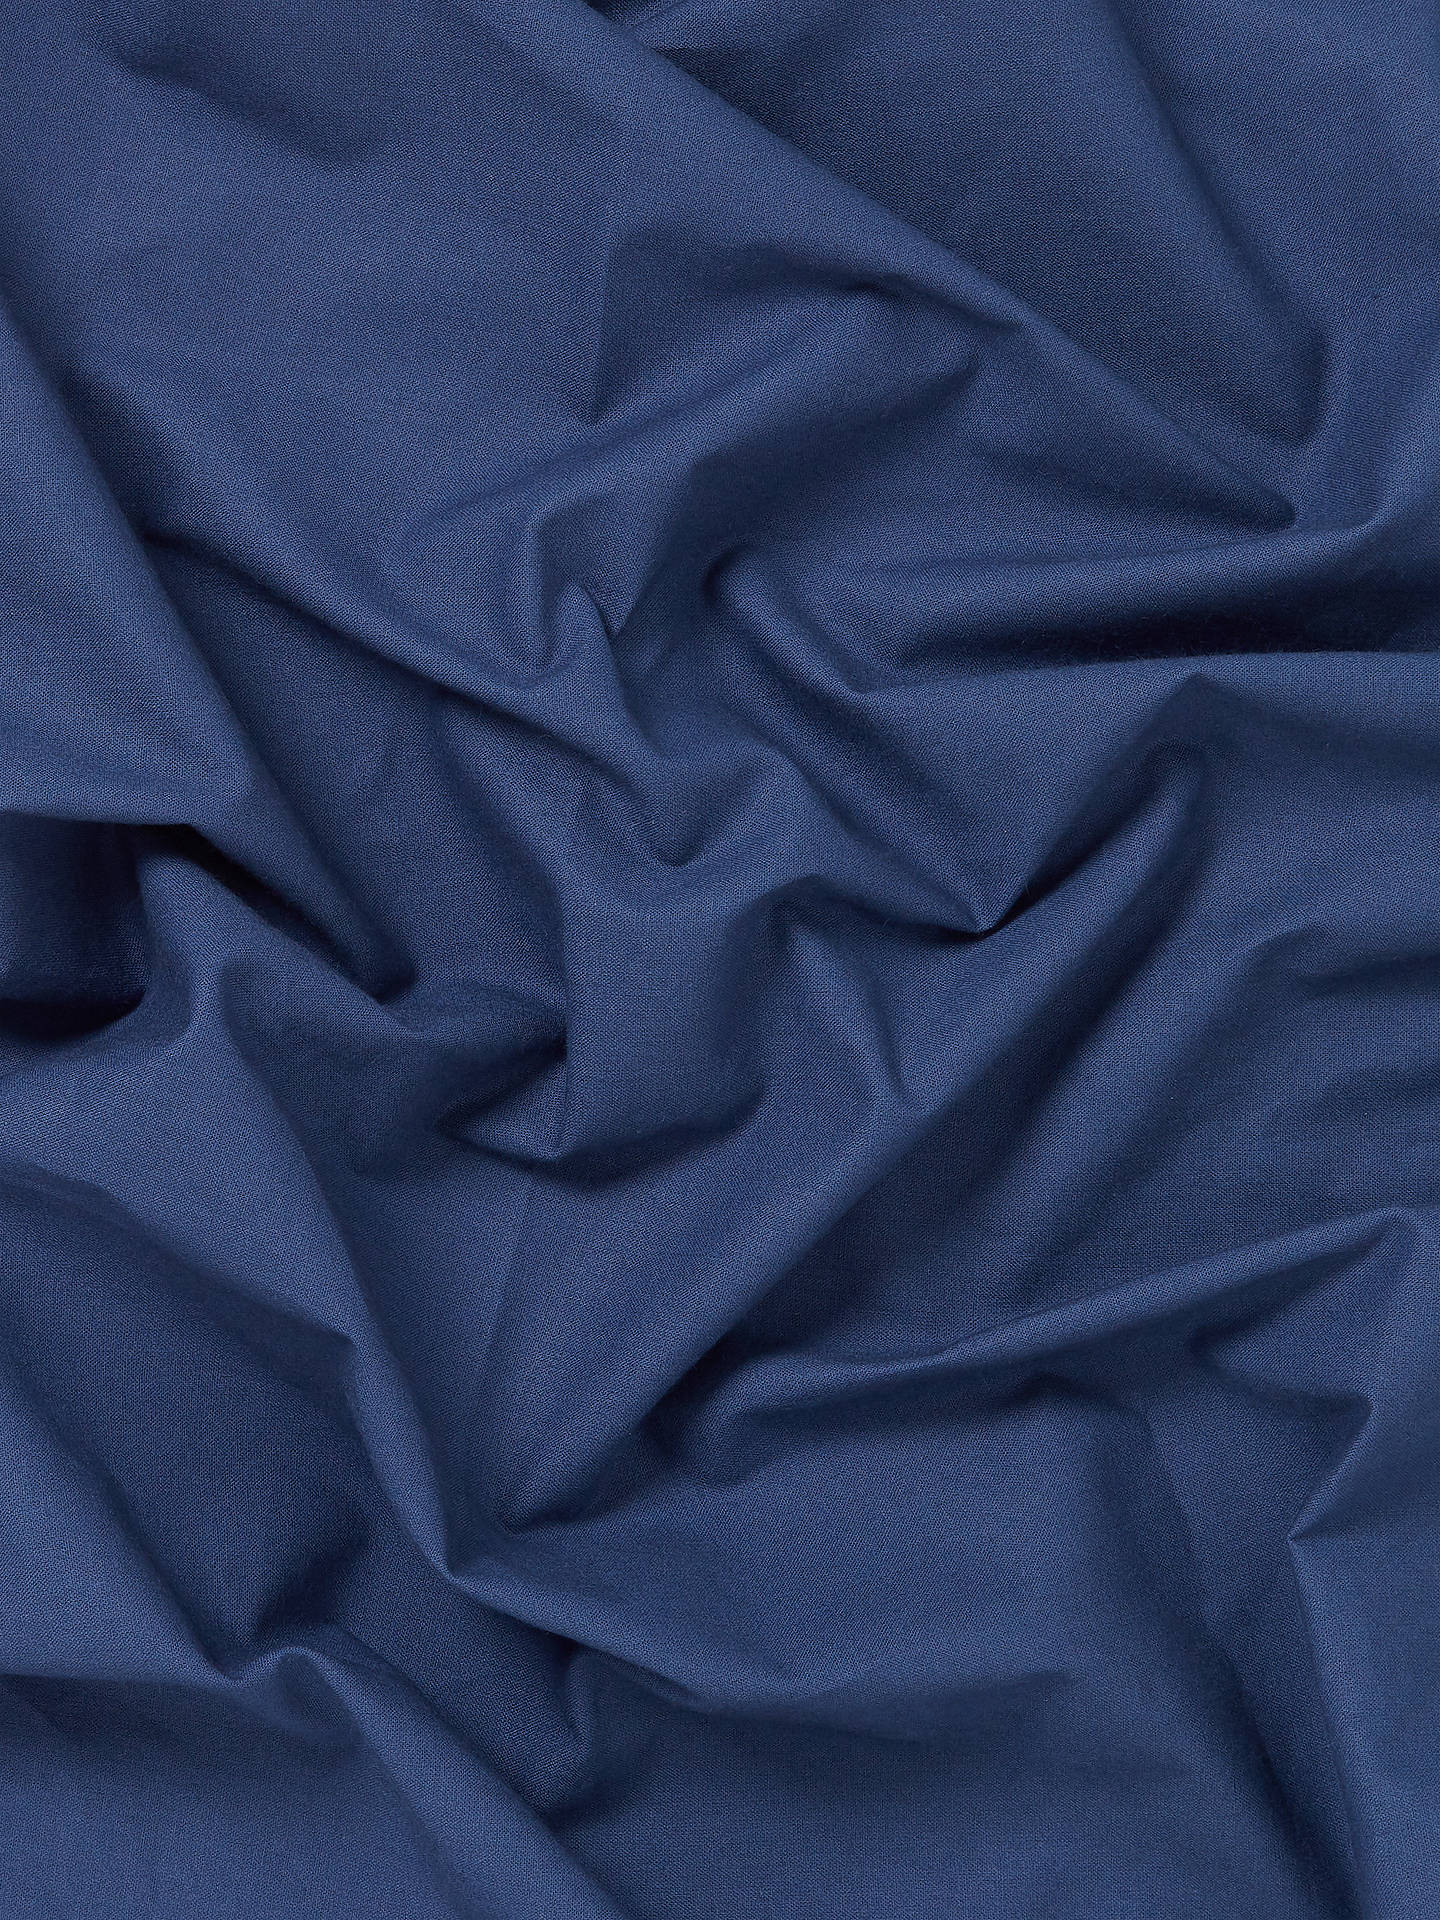 Buy Oddies Textiles Cotton Fabric, Navy Online at johnlewis.com